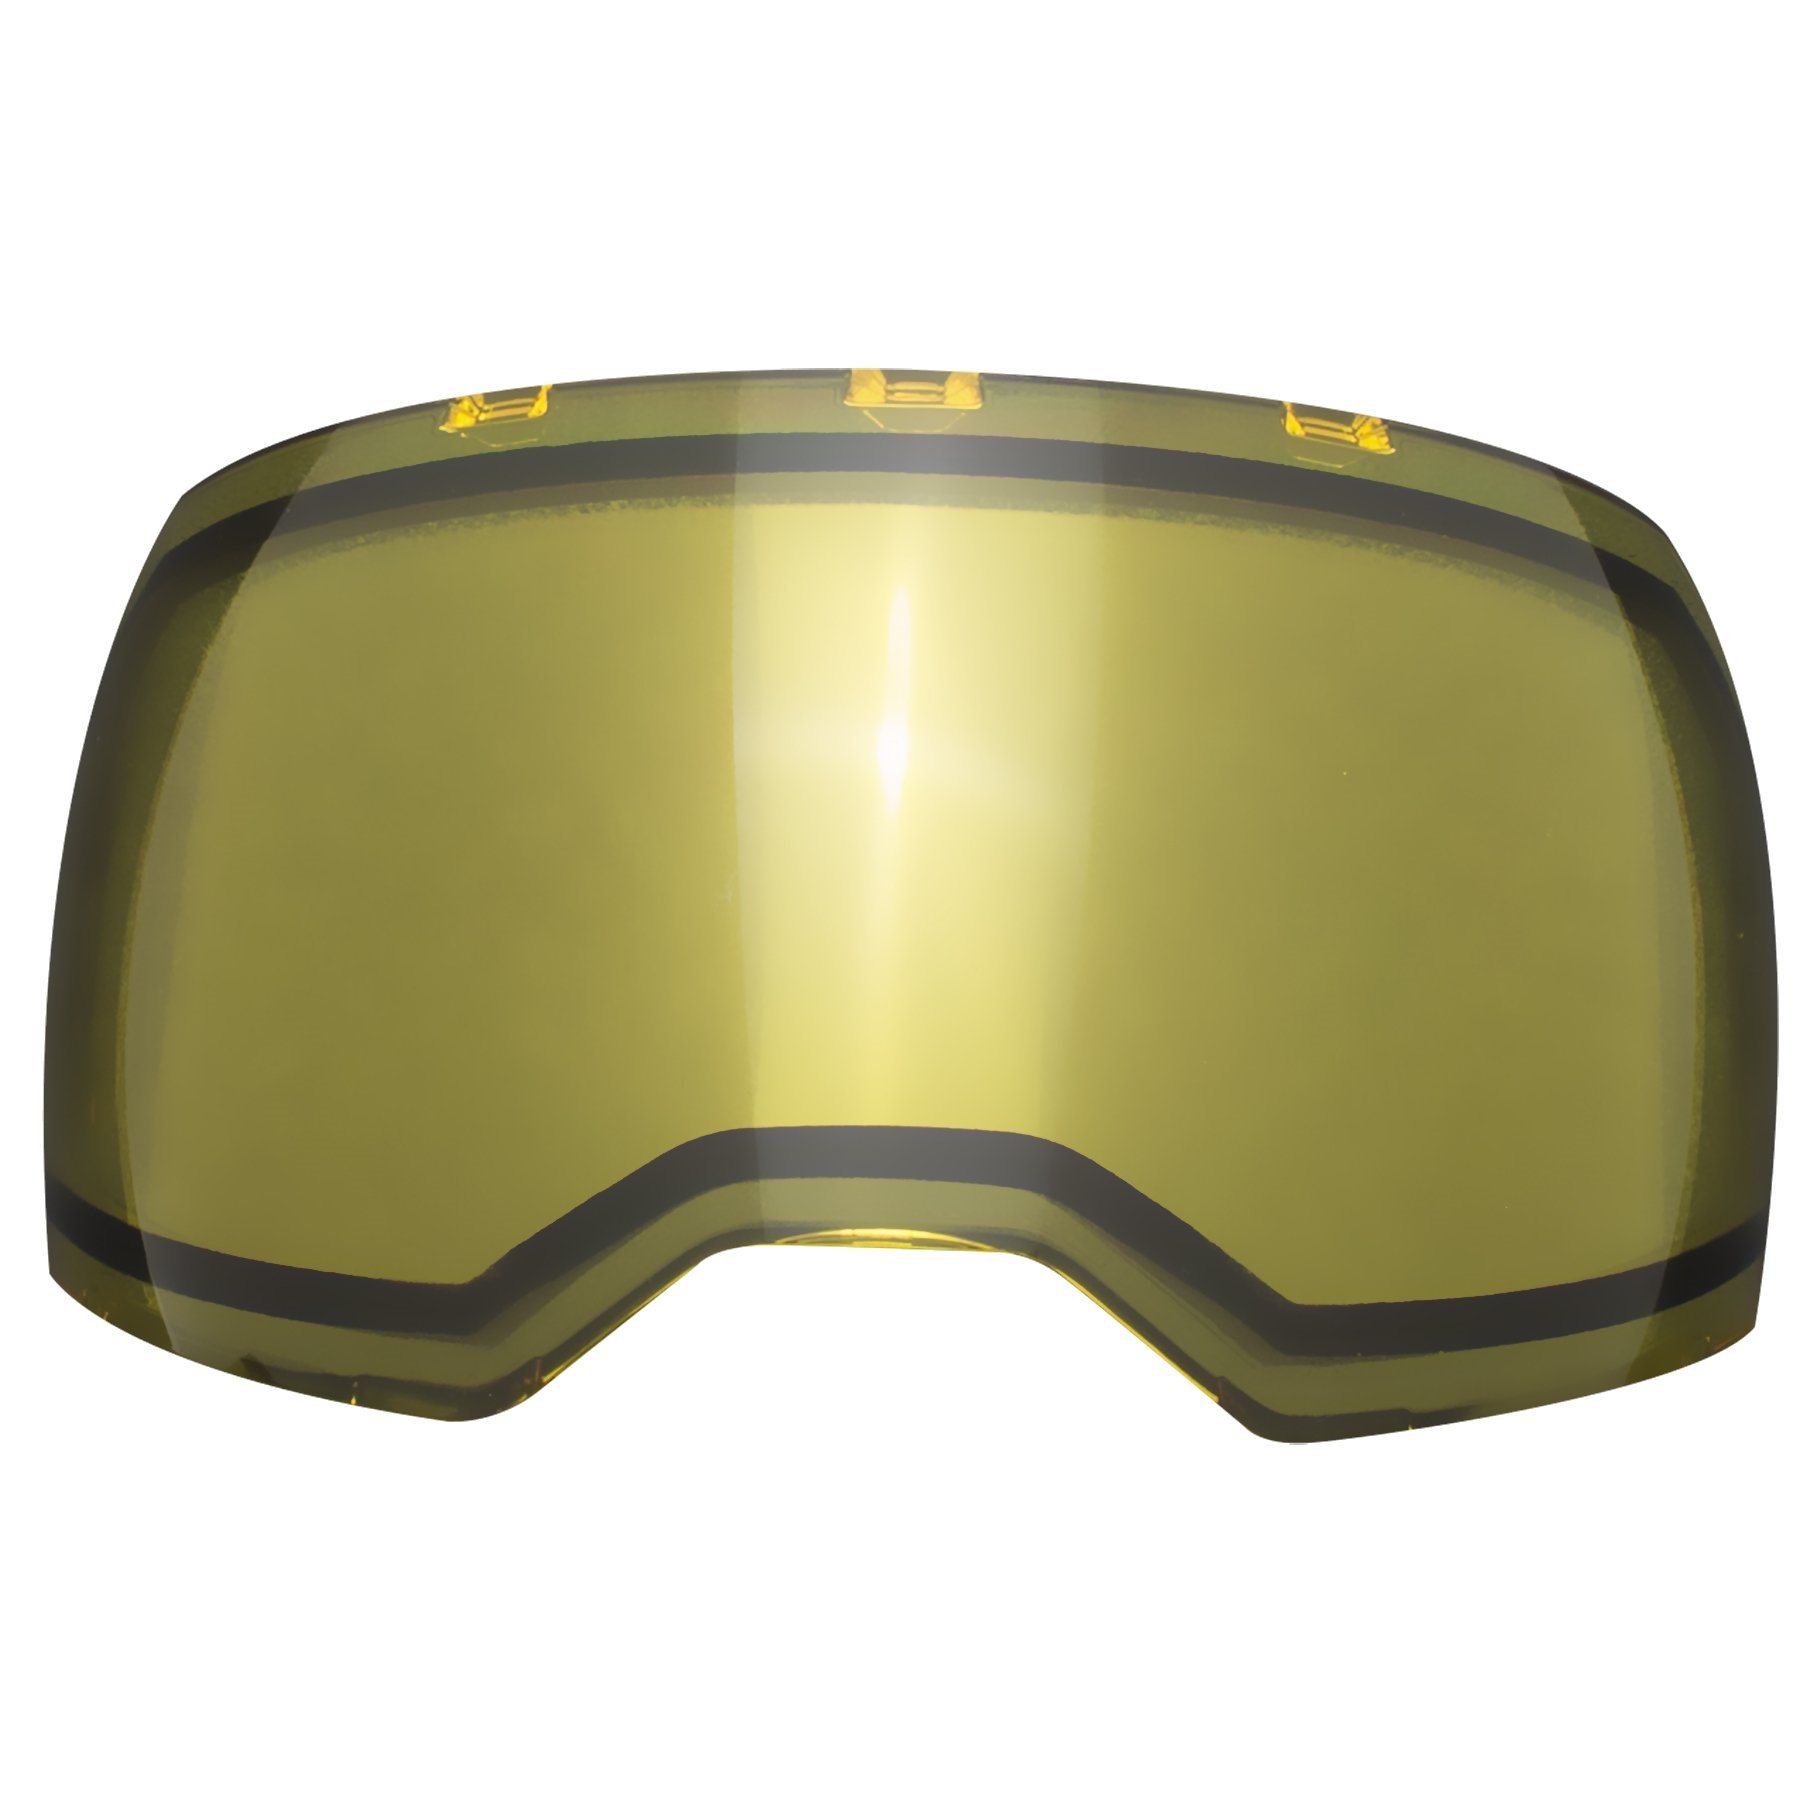 Empire EVS Thermal Goggle Lens - Yellow by Empire